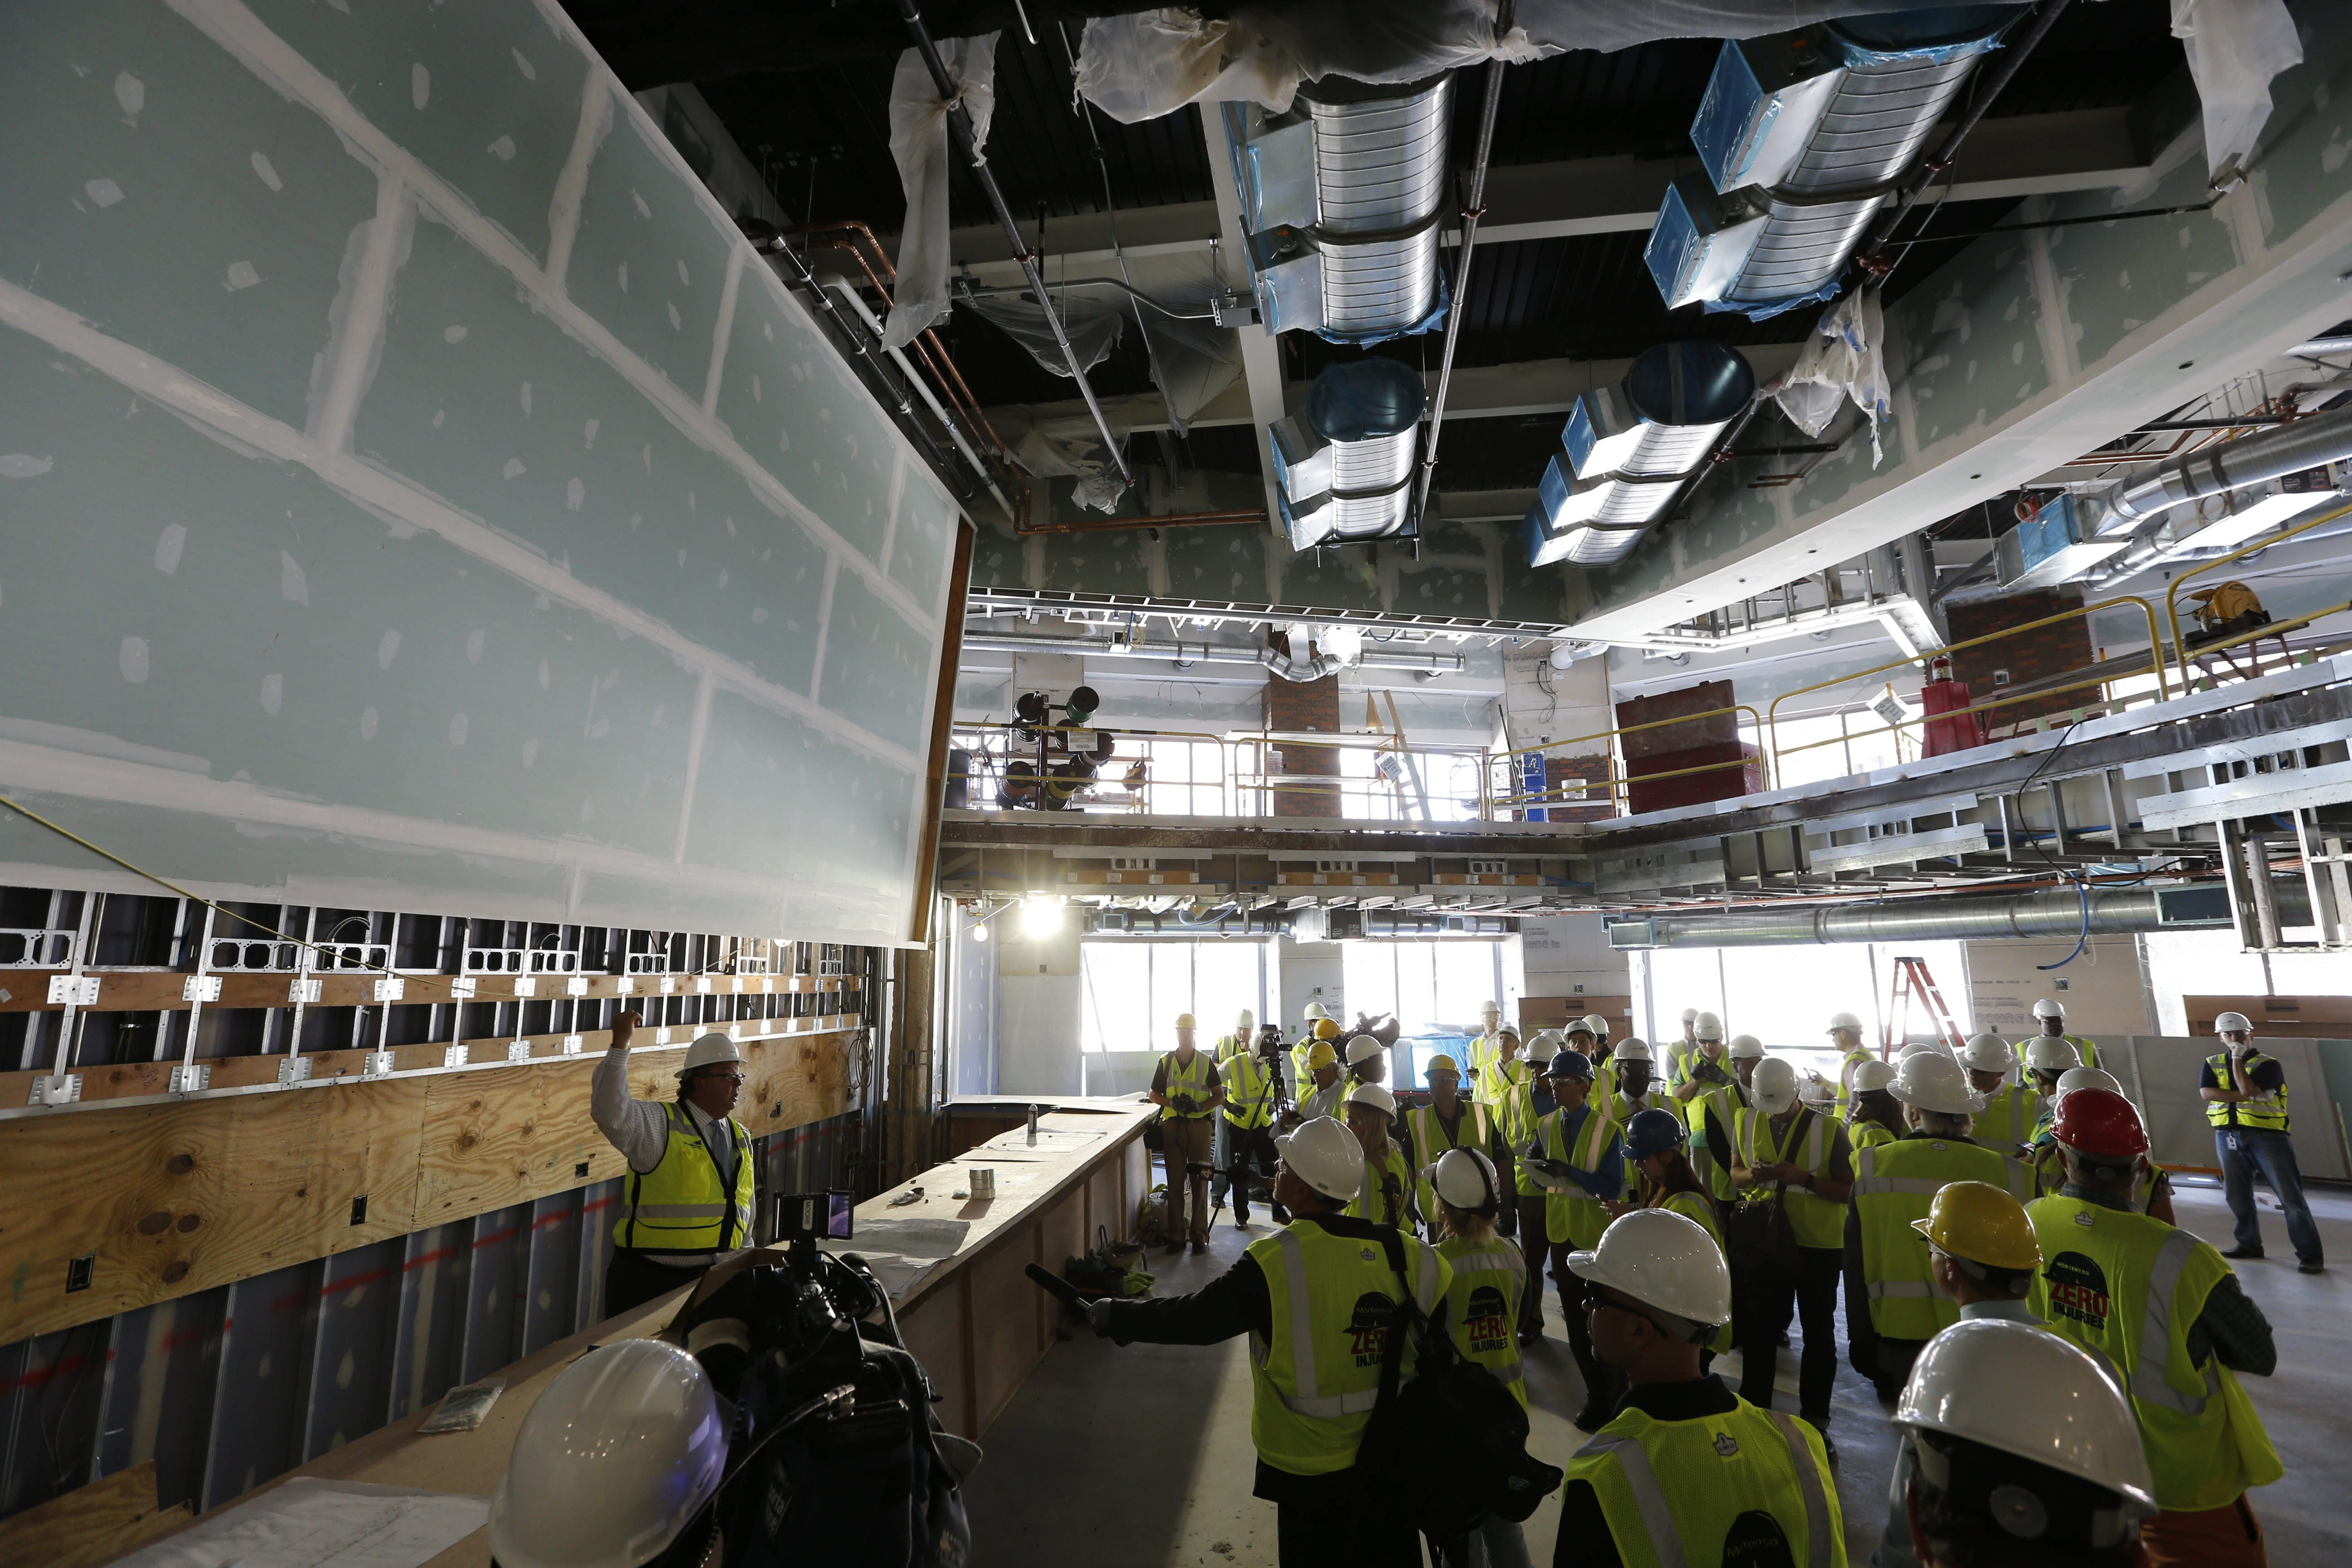 HarborCenter President John R. Koelmel stands below the giant TV screen under construction at the main bar in the (716) Food and Sport restaurant as he explains the facility's features during media tour. See a photo gallery at BuffaloNews.com.